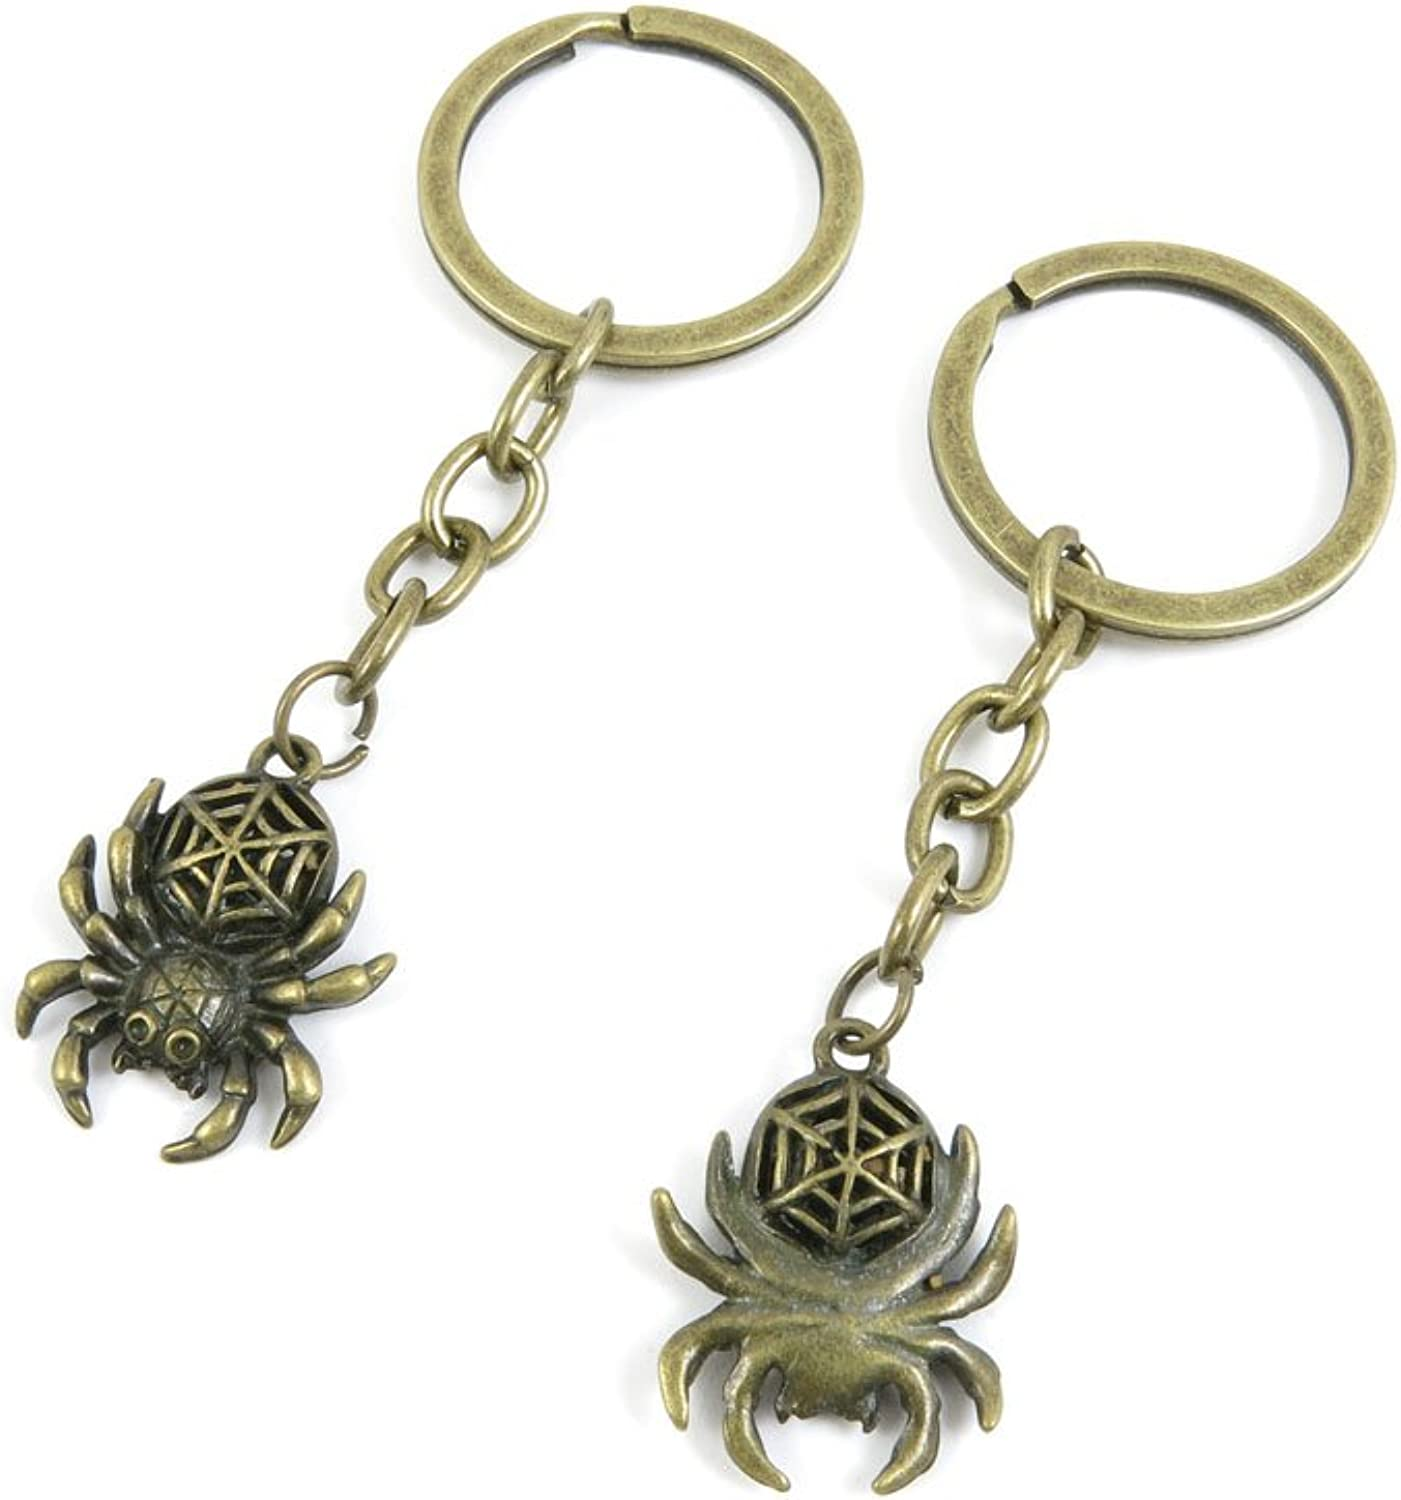 120 Pieces Fashion Jewelry Keyring Keychain Door Car Key Tag Ring Chain Supplier Supply Wholesale Bulk Lots V8PK4 Hollow Spider